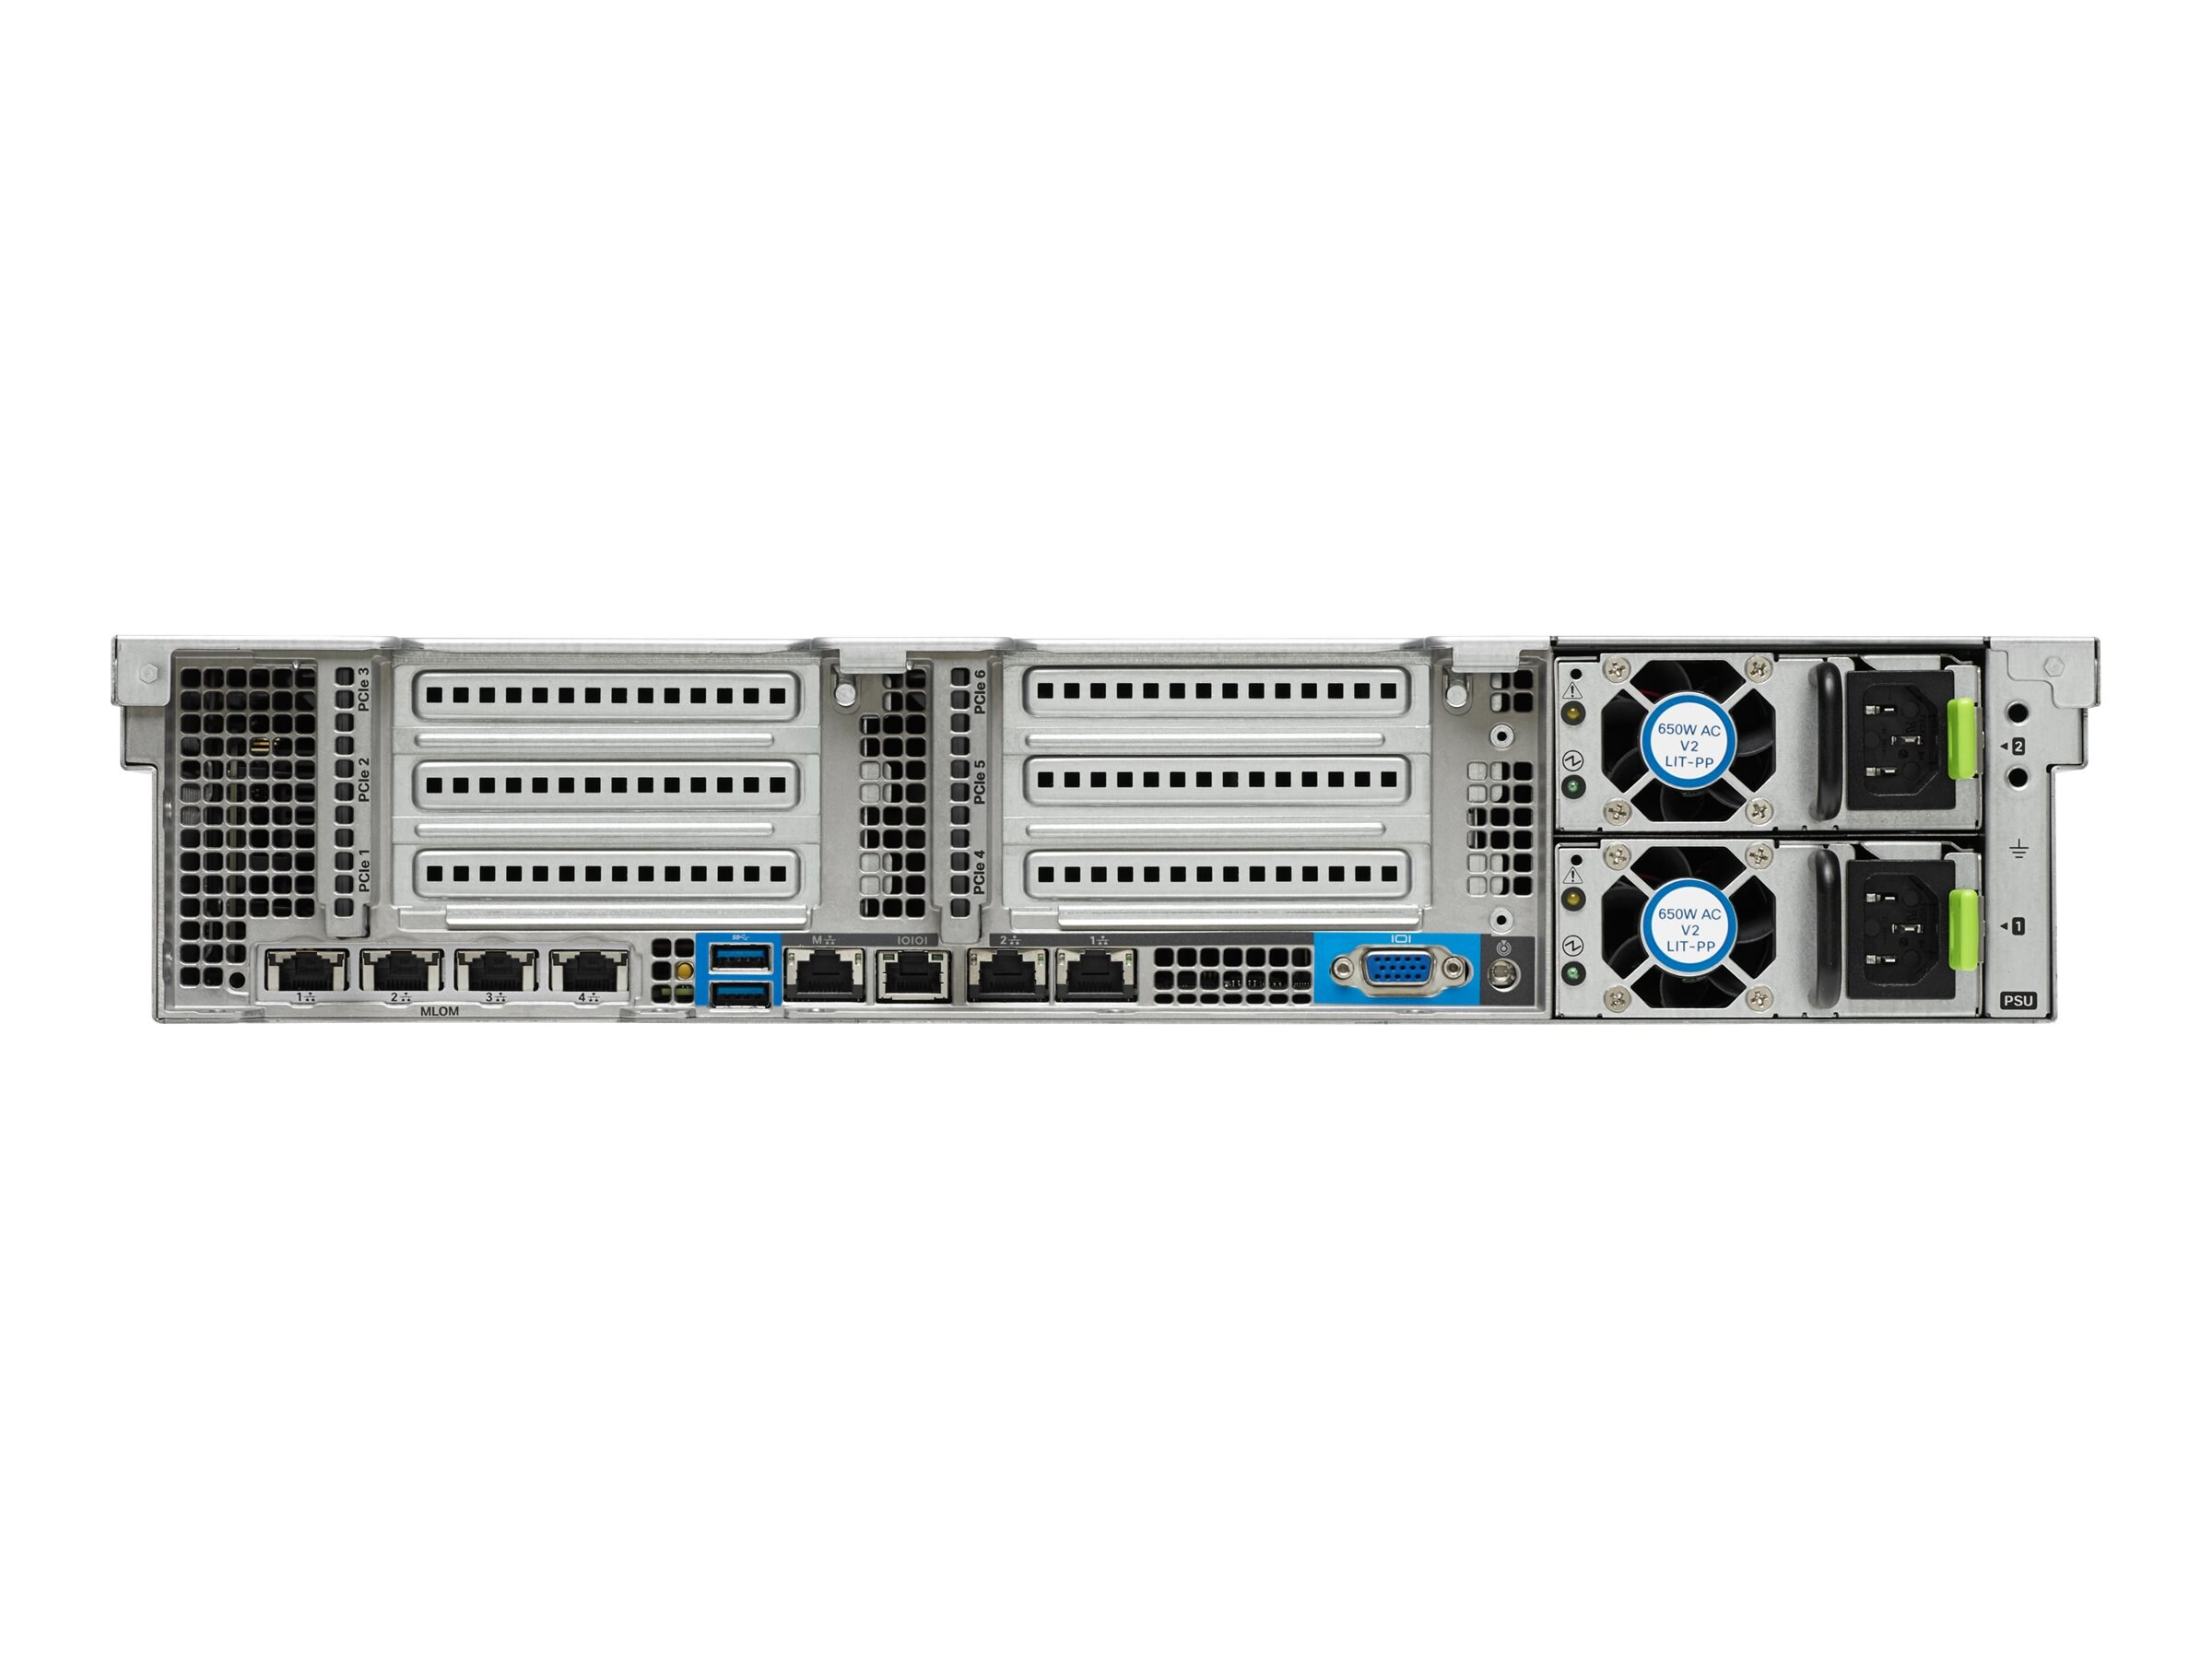 Cisco UCS-SP-C240M4L-S2 Image 6